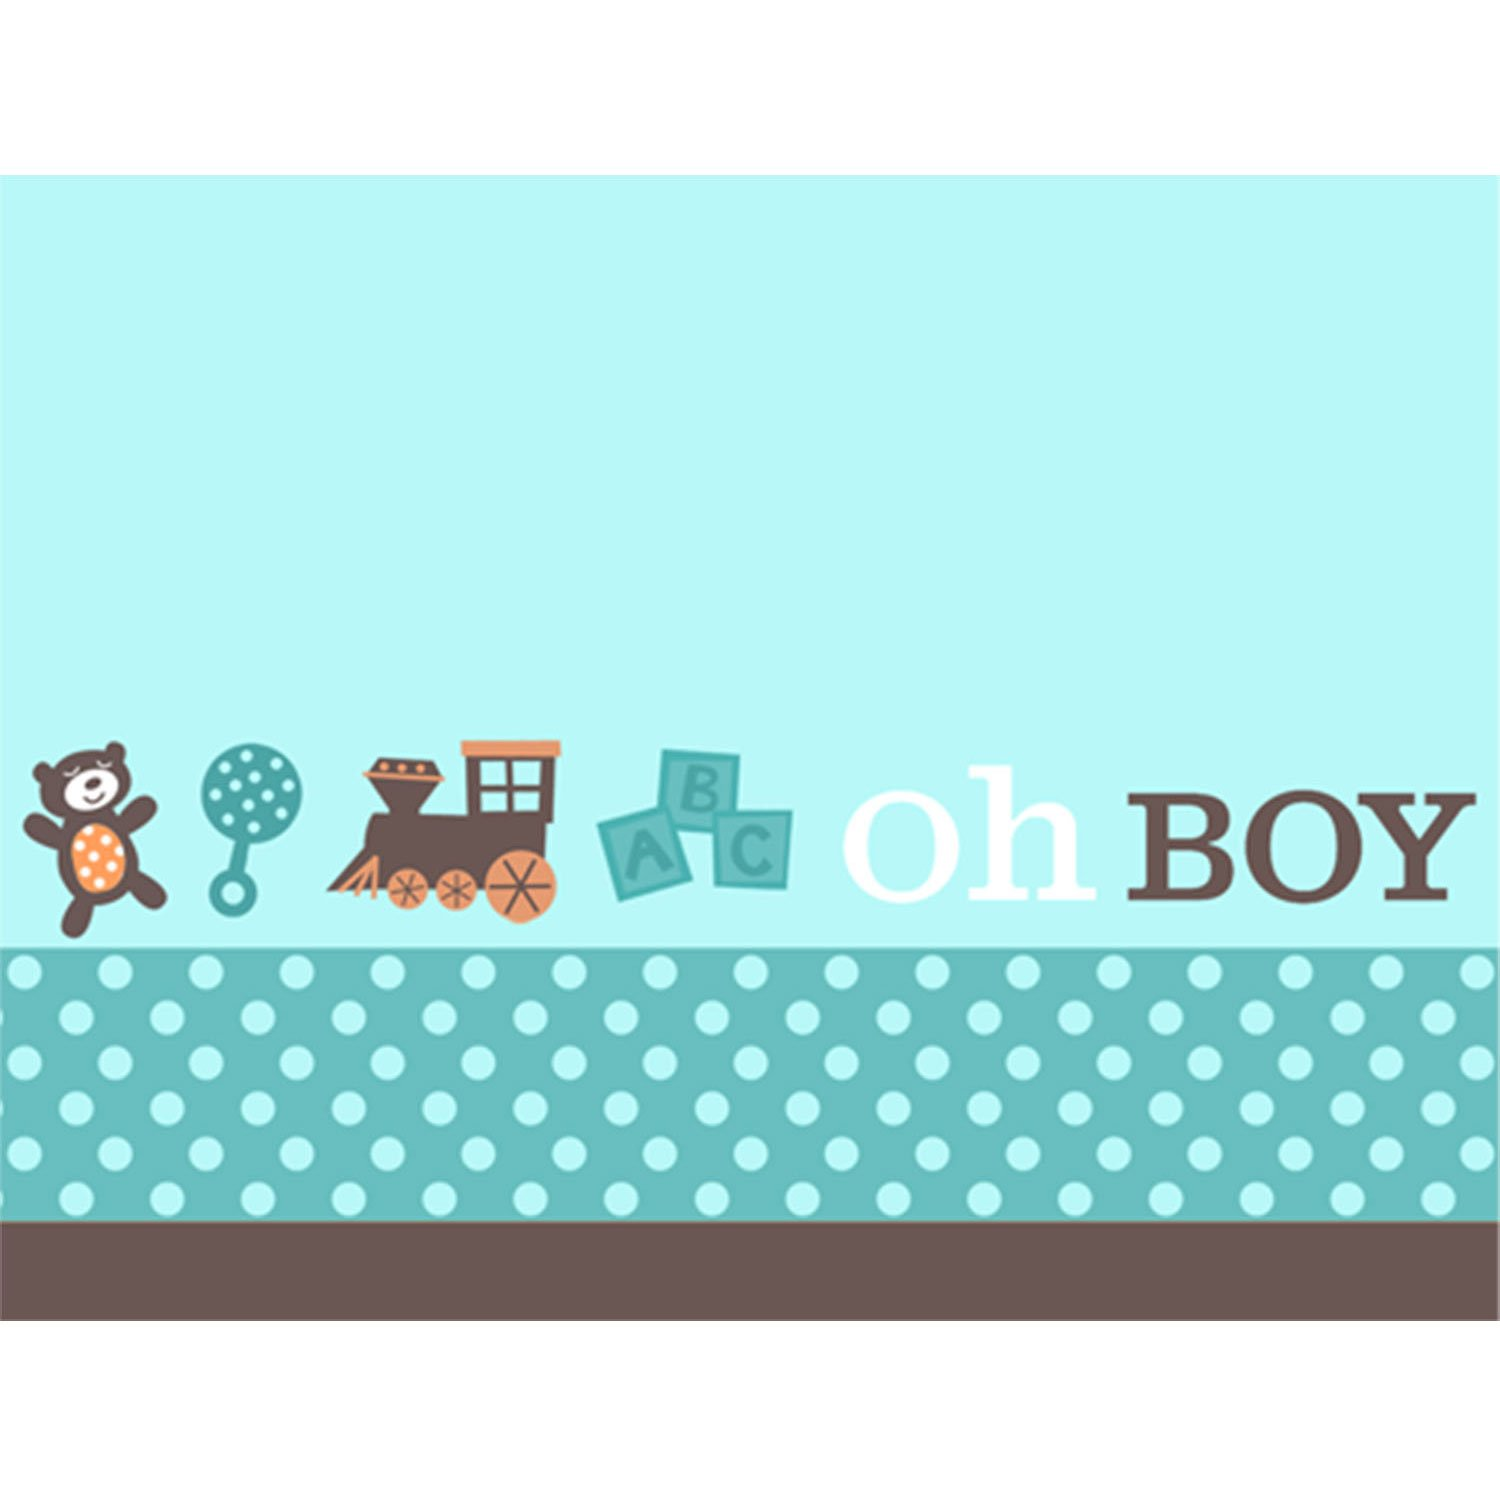 Amazon.com : Boy Oh Boy Baby Shower Invitations : Childrens Party ...